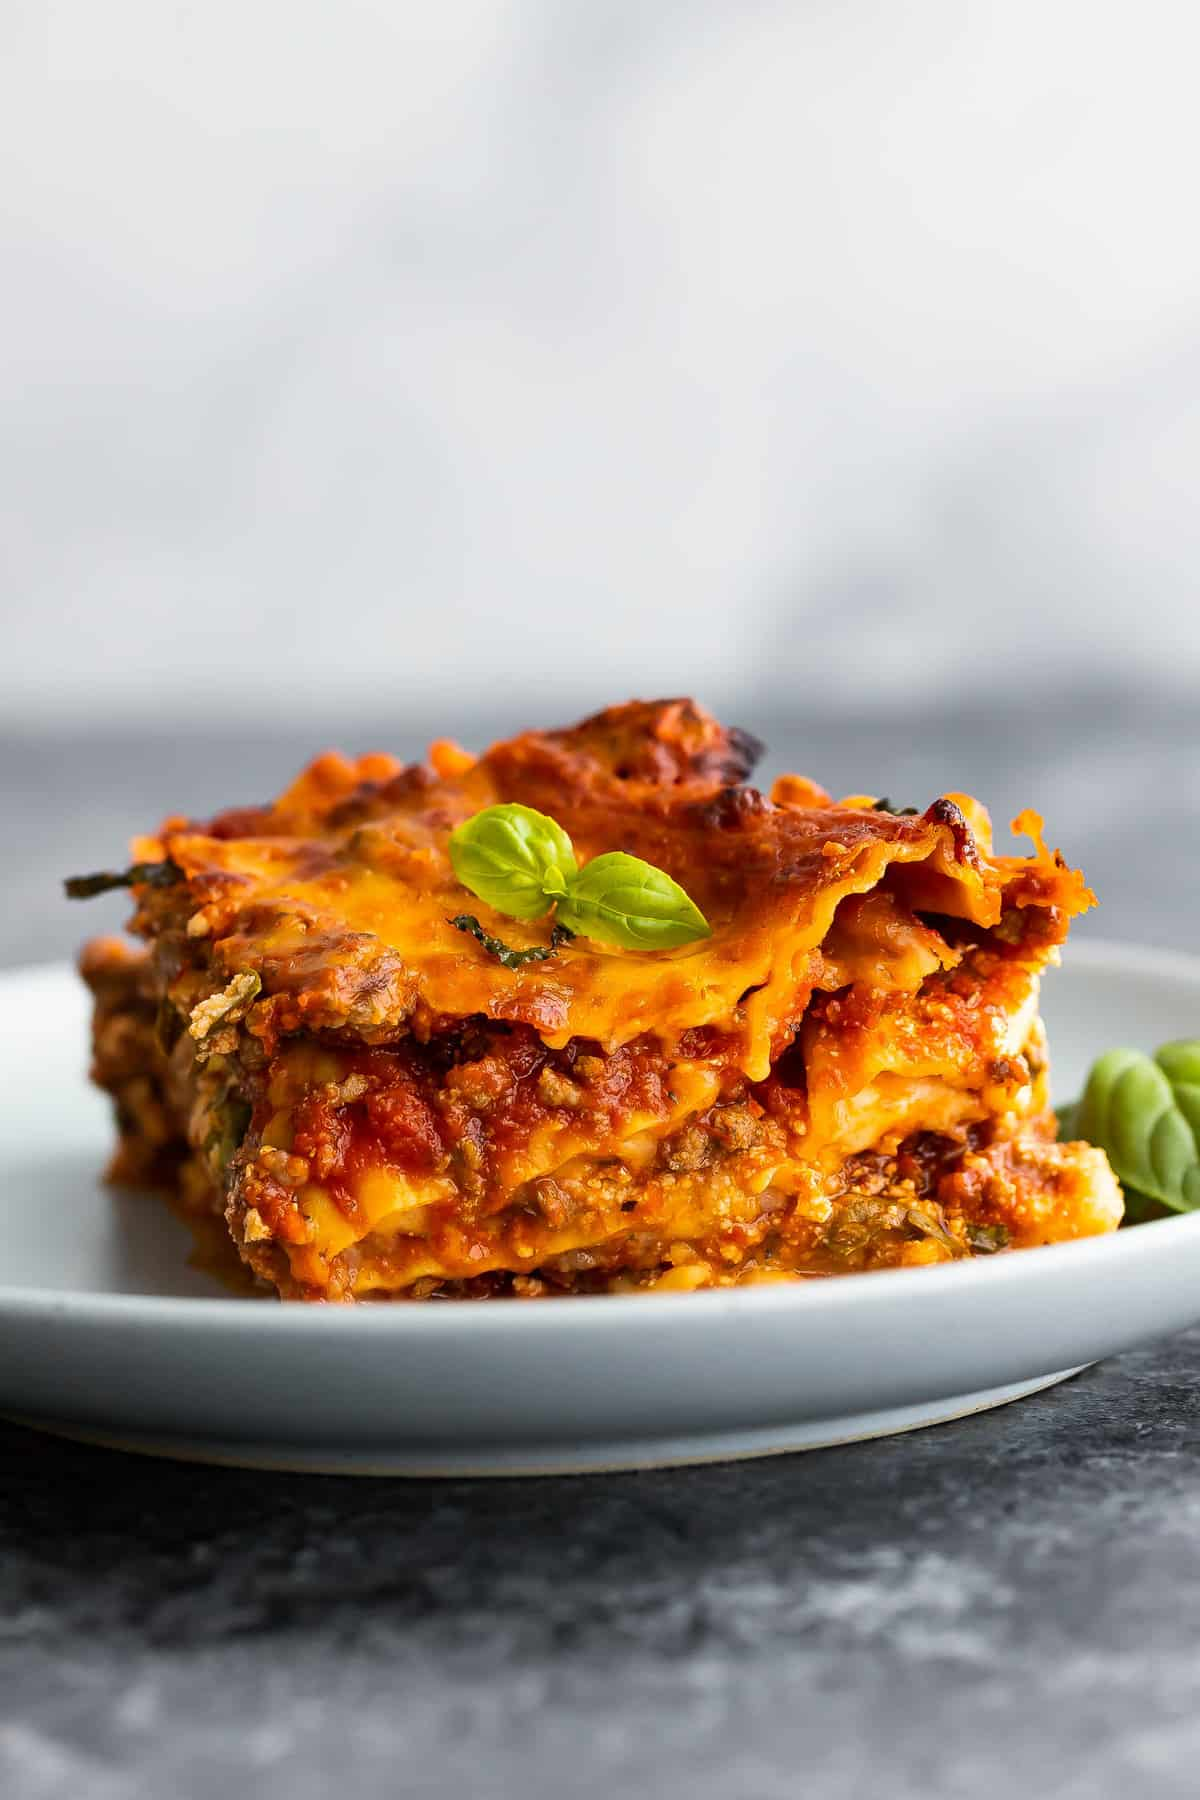 Side view of lasagne slice on plate with basil